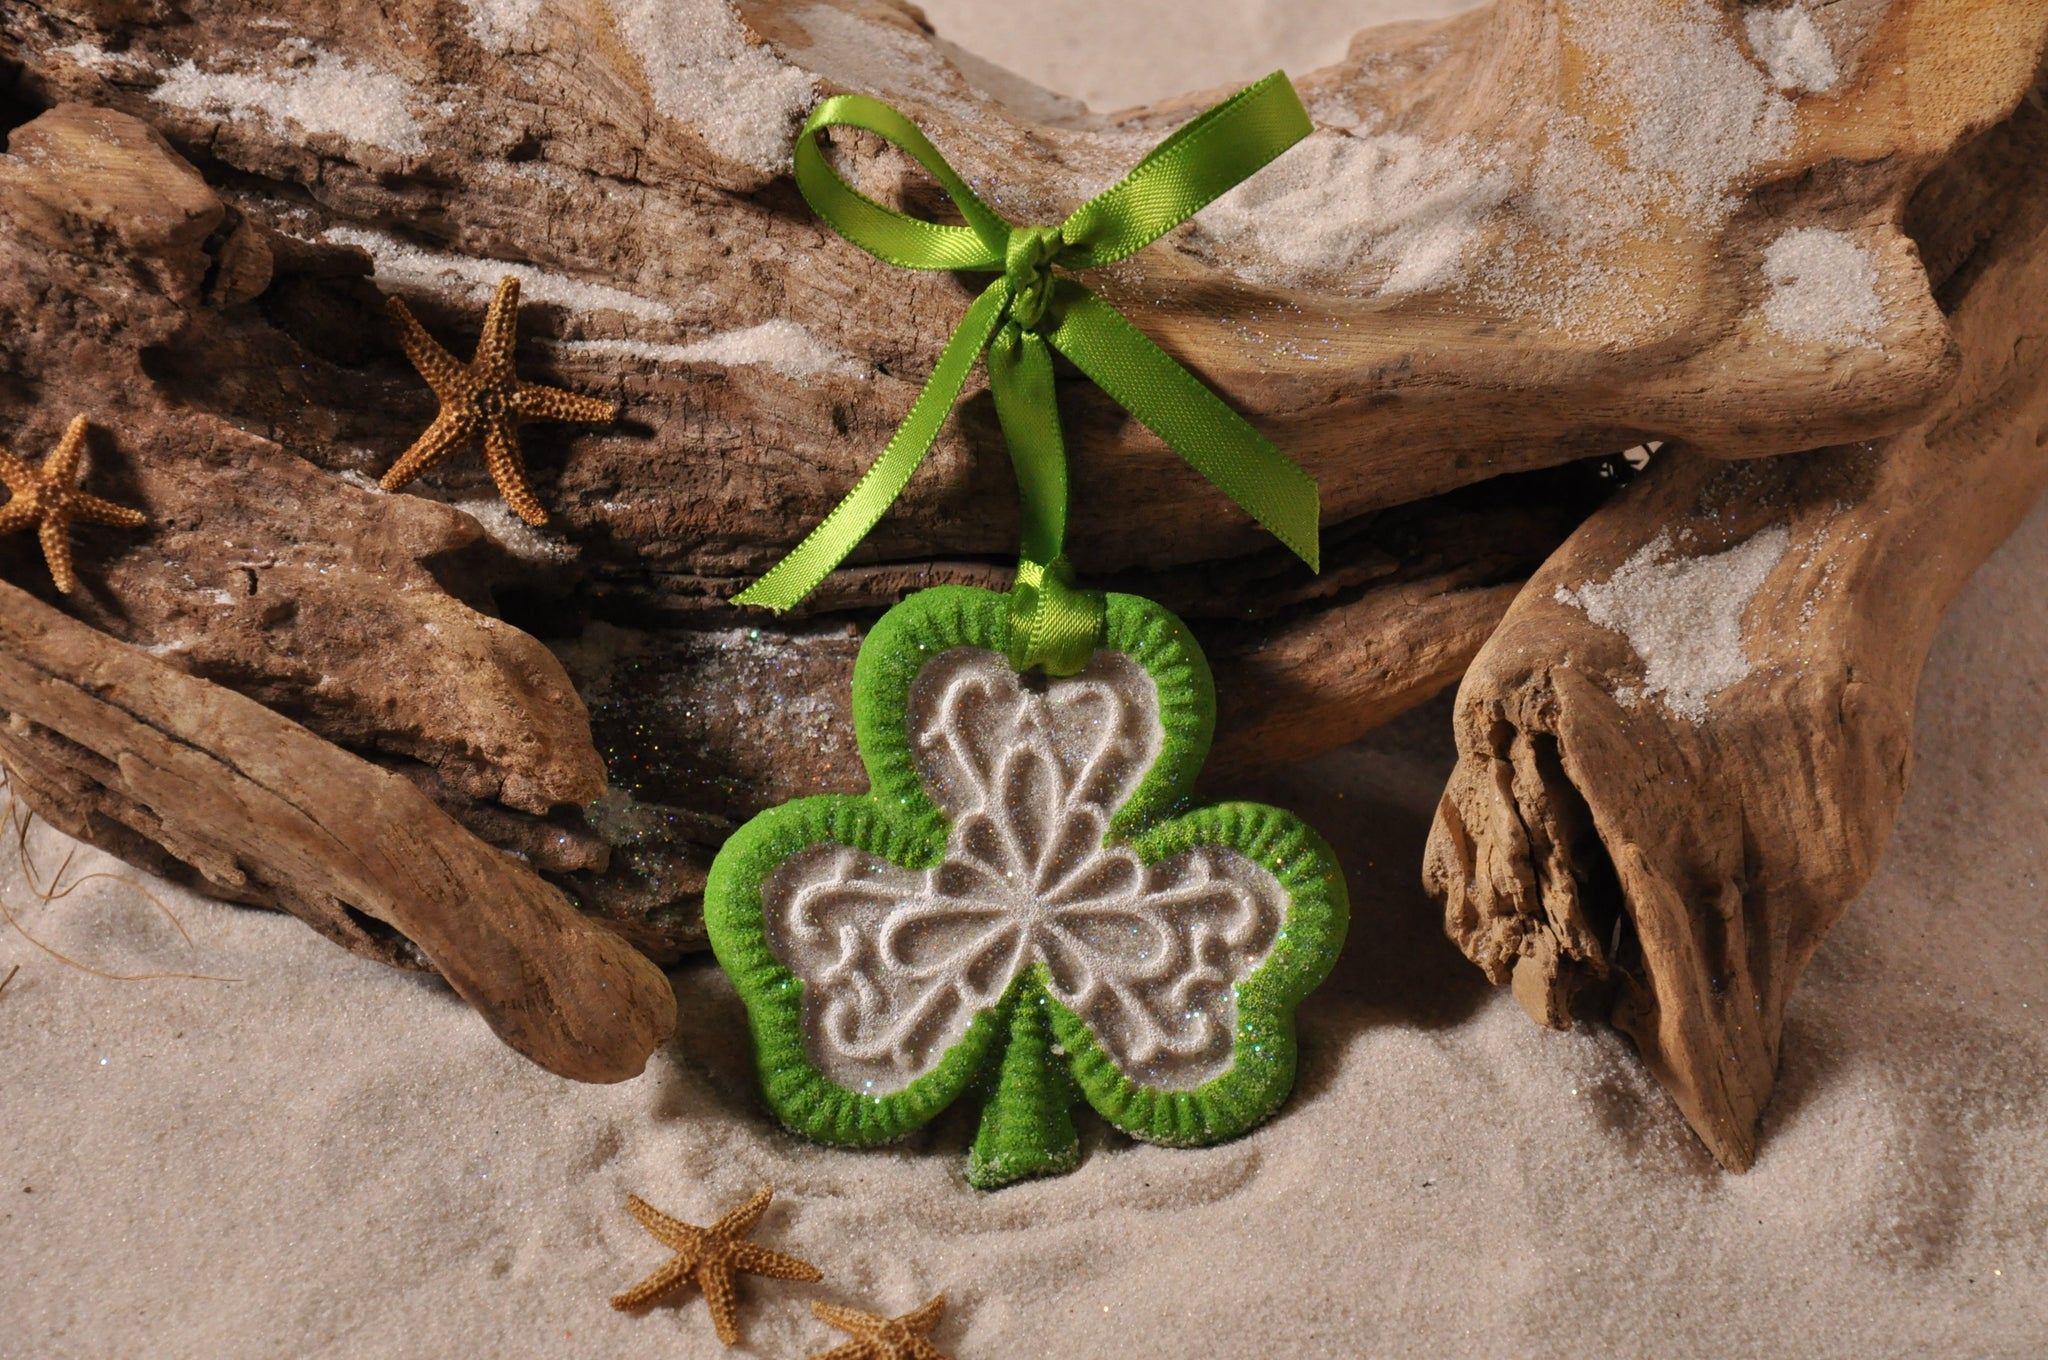 SAND ORNAMENT, CHRISTMAS TREE ORNAMENT, TROPICAL CHRISTMAS DECORATIONS, COASTAL ORNAMENT, SAND ORNAMENT, TROPICAL ORNAMENT, ARENOPHILE, ST PATRICK, IRISH